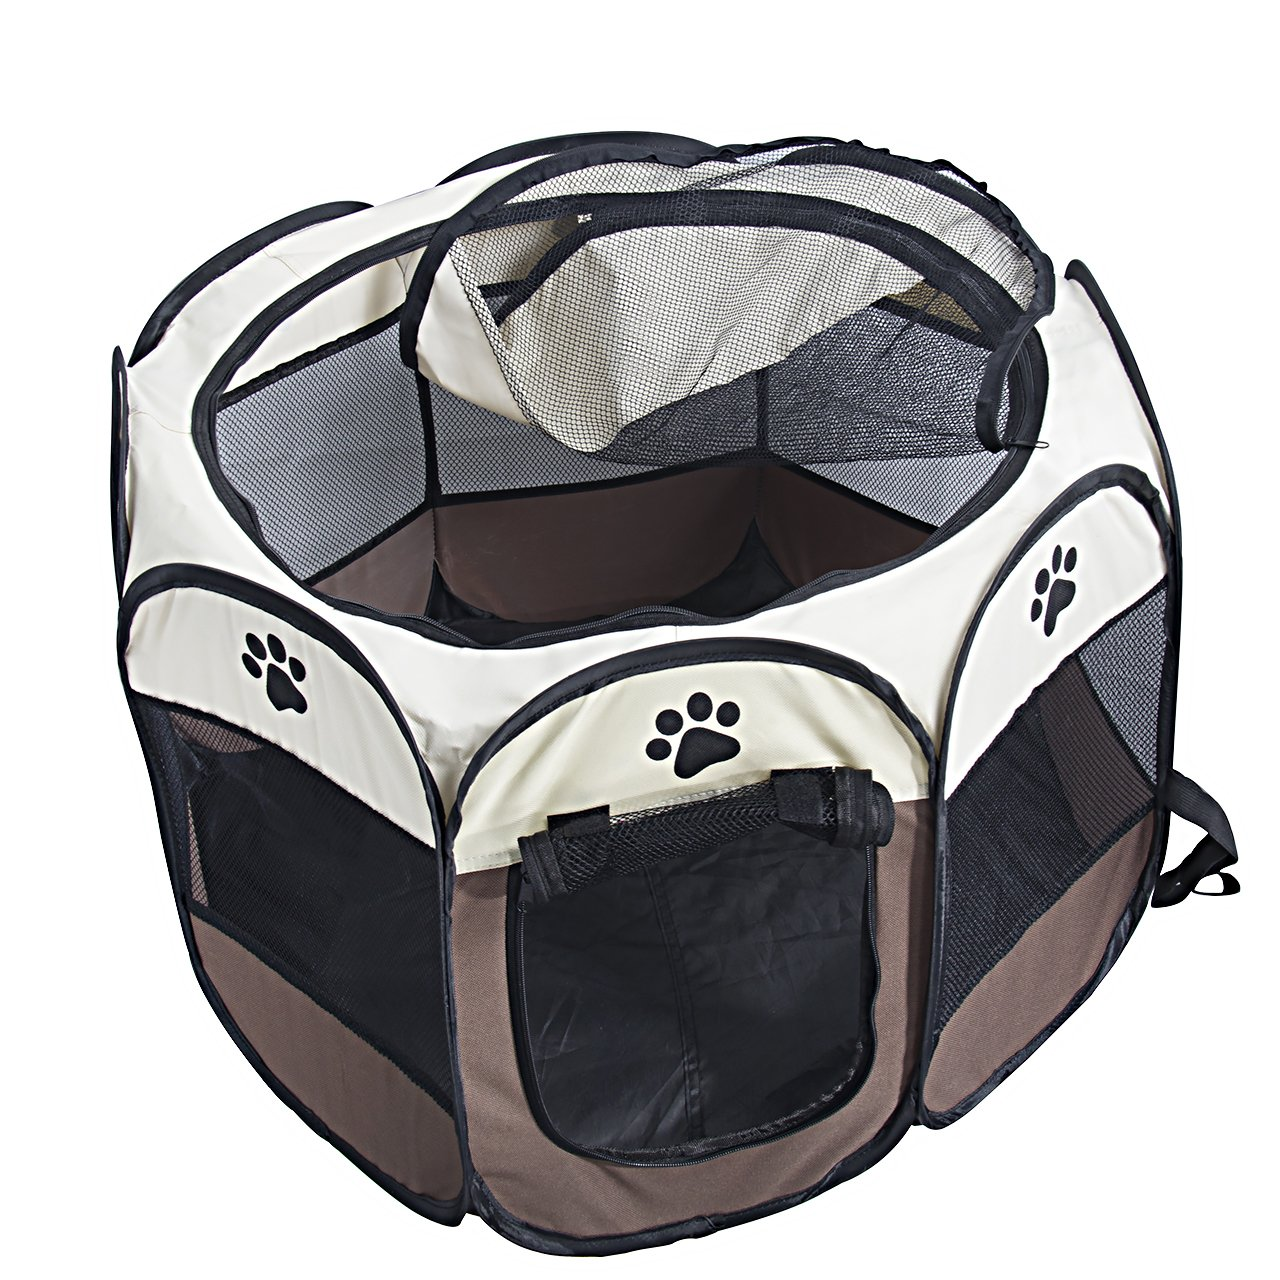 MiLuck Pet Portable Foldable Playpen, Exercise 8-Panel Kennel Mesh Shade Cover Indoor/outdoor Tent Fence For Dogs Cats(L/Brown) by MiLuck (Image #5)